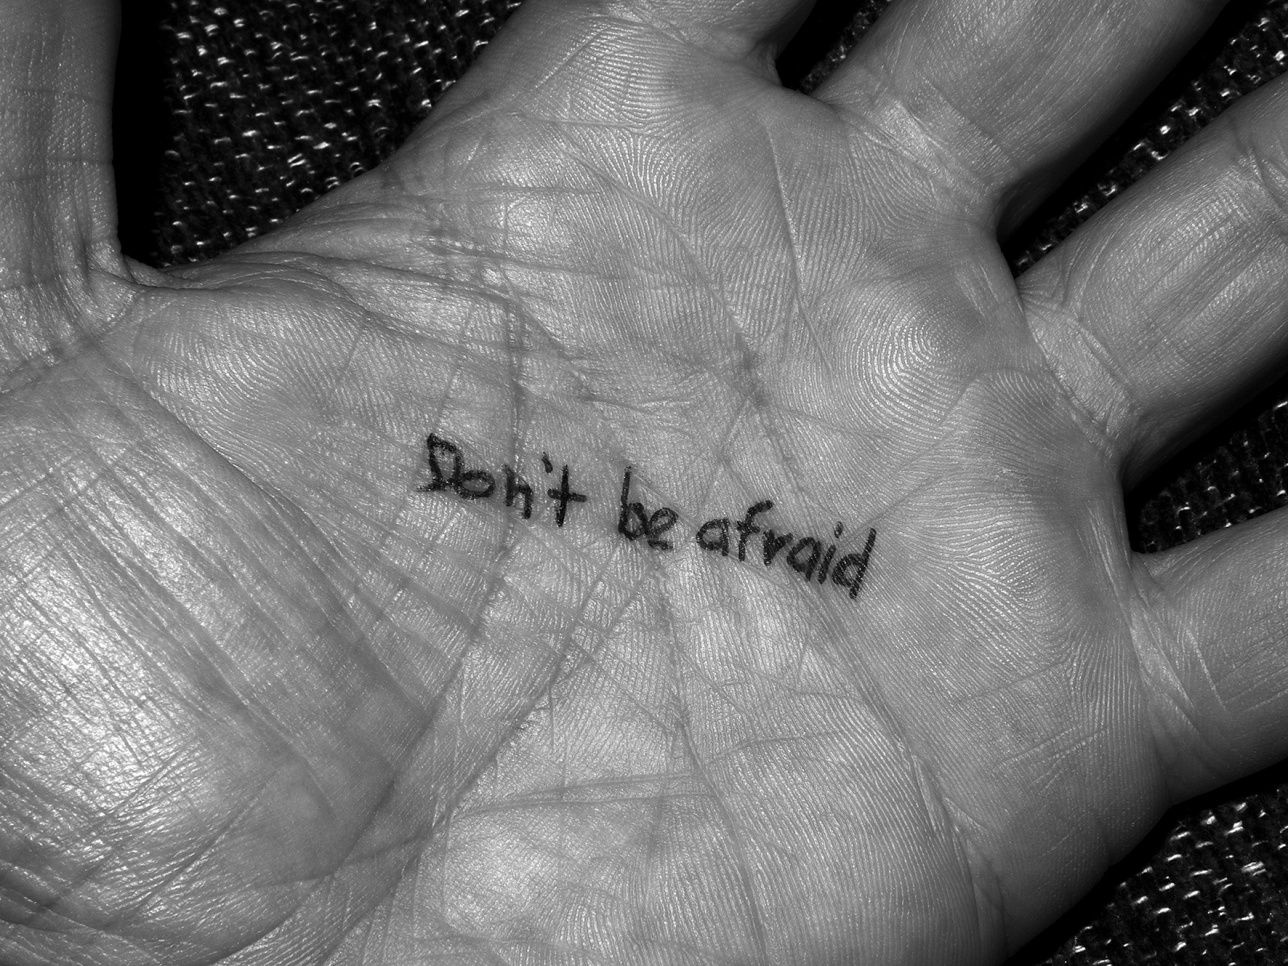 Don't Be Afraid / Nasan Tur